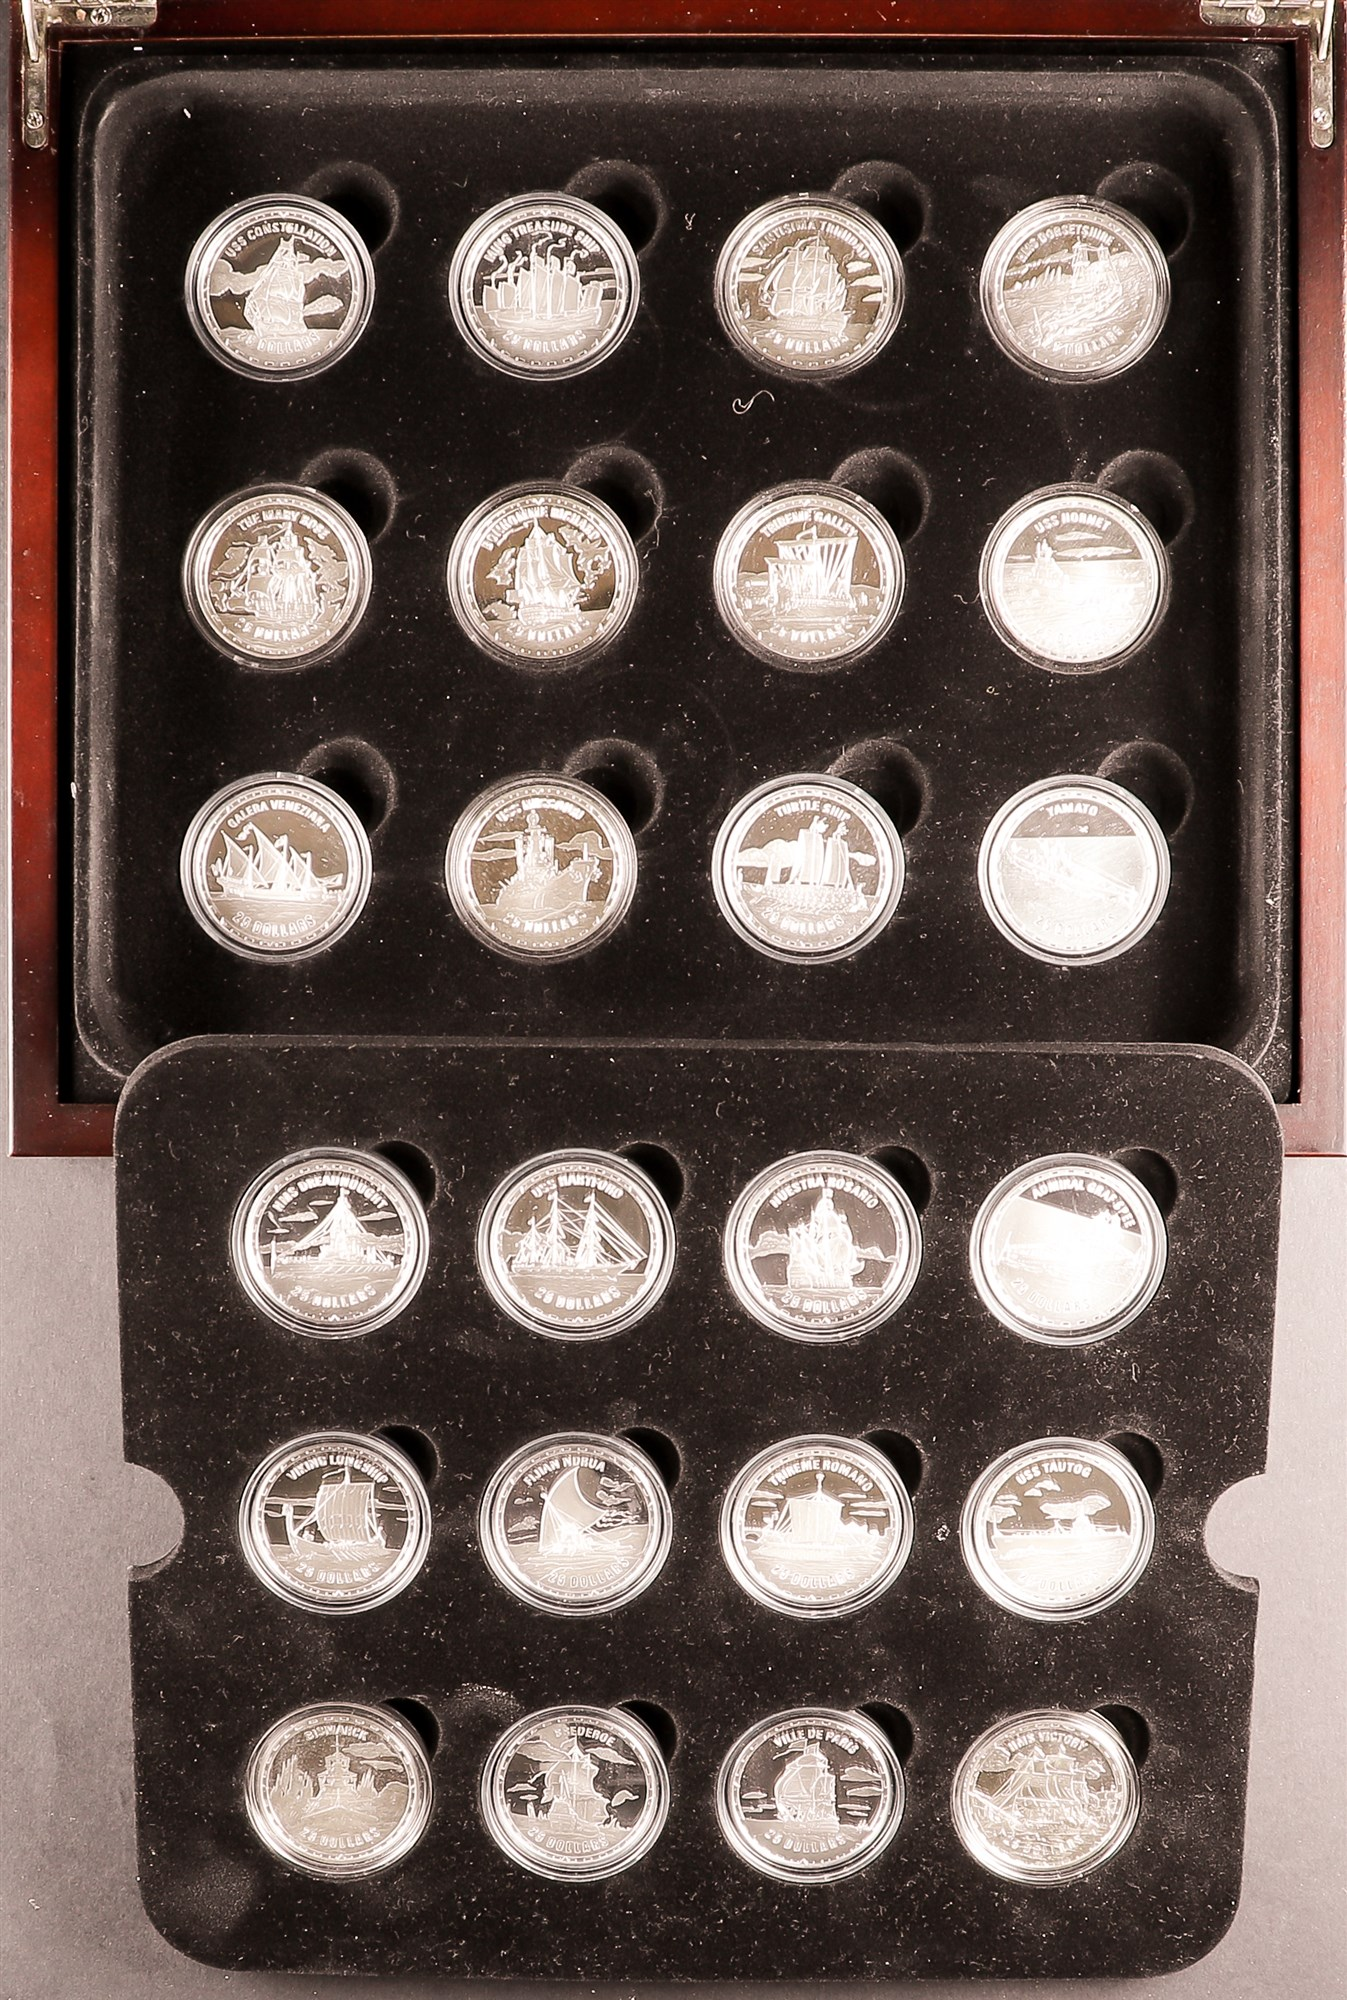 2005 SILVER PROOF COIN COLLECTION A complete collection of Solomon Island - SILVER PROOF 1oz coins,